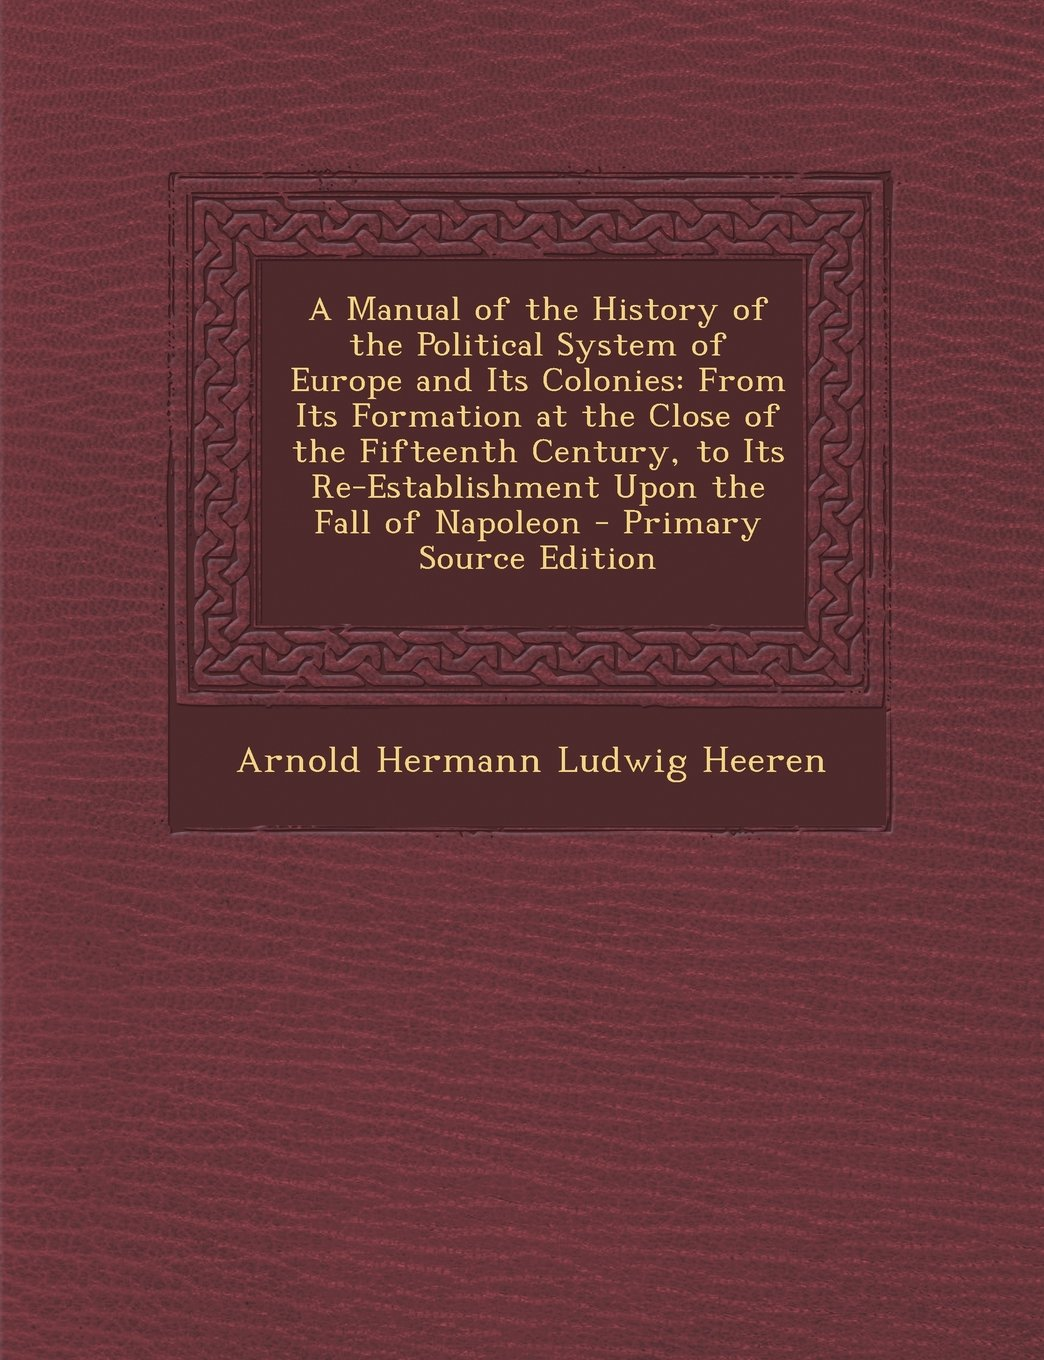 Read Online A Manual of the History of the Political System of Europe and Its Colonies: From Its Formation at the Close of the Fifteenth Century, to Its Re-Establ ebook